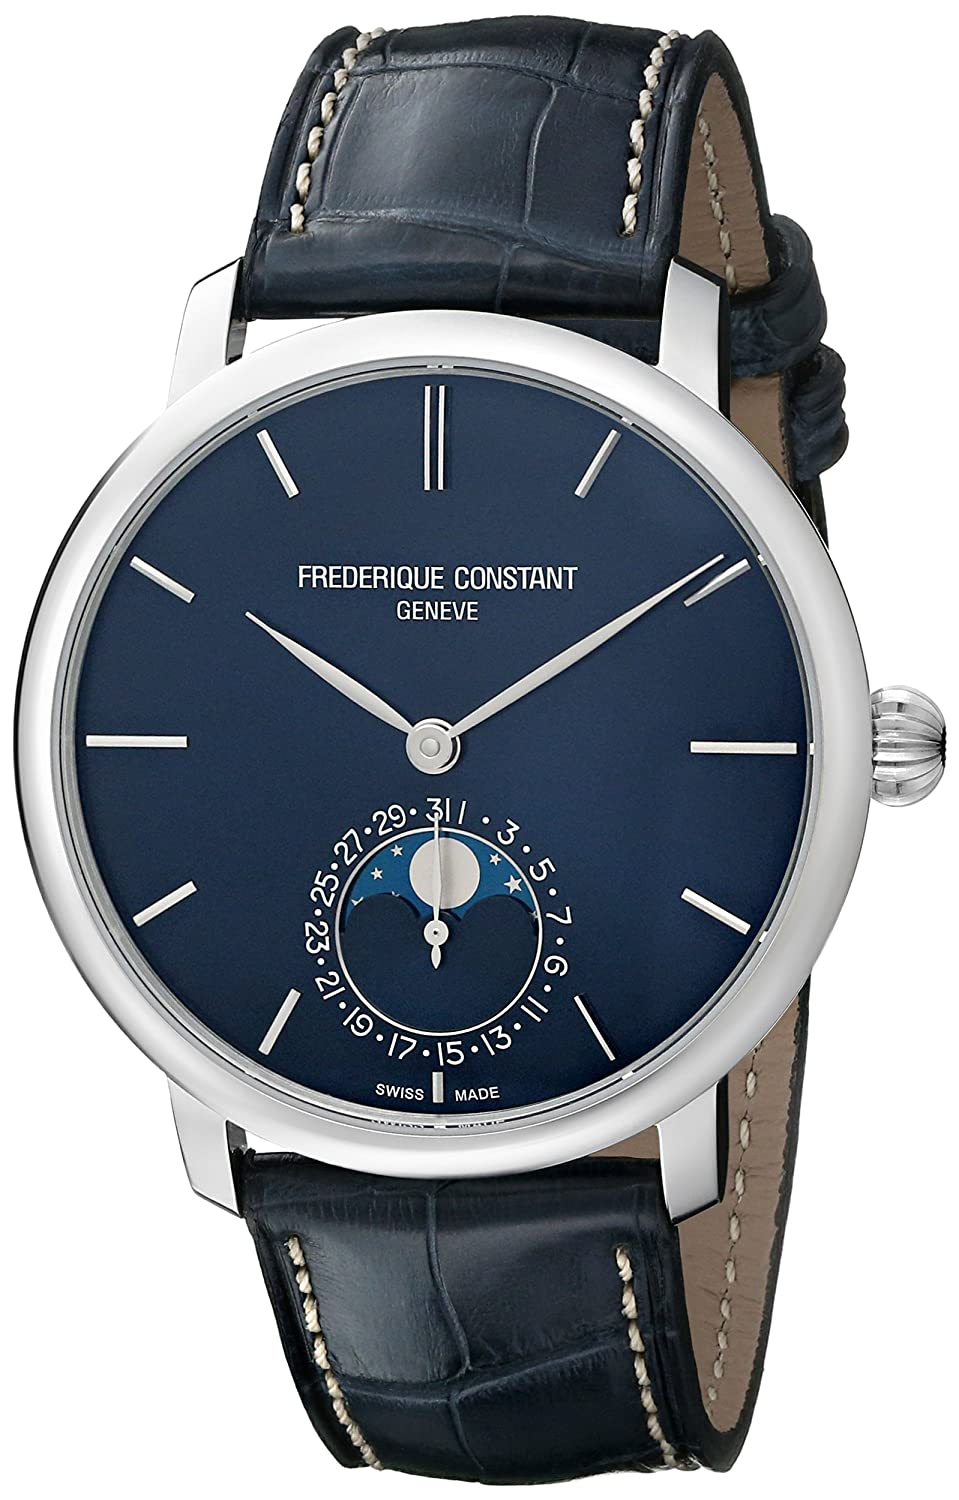 owned fc frederique watches classics constant moonphase pre